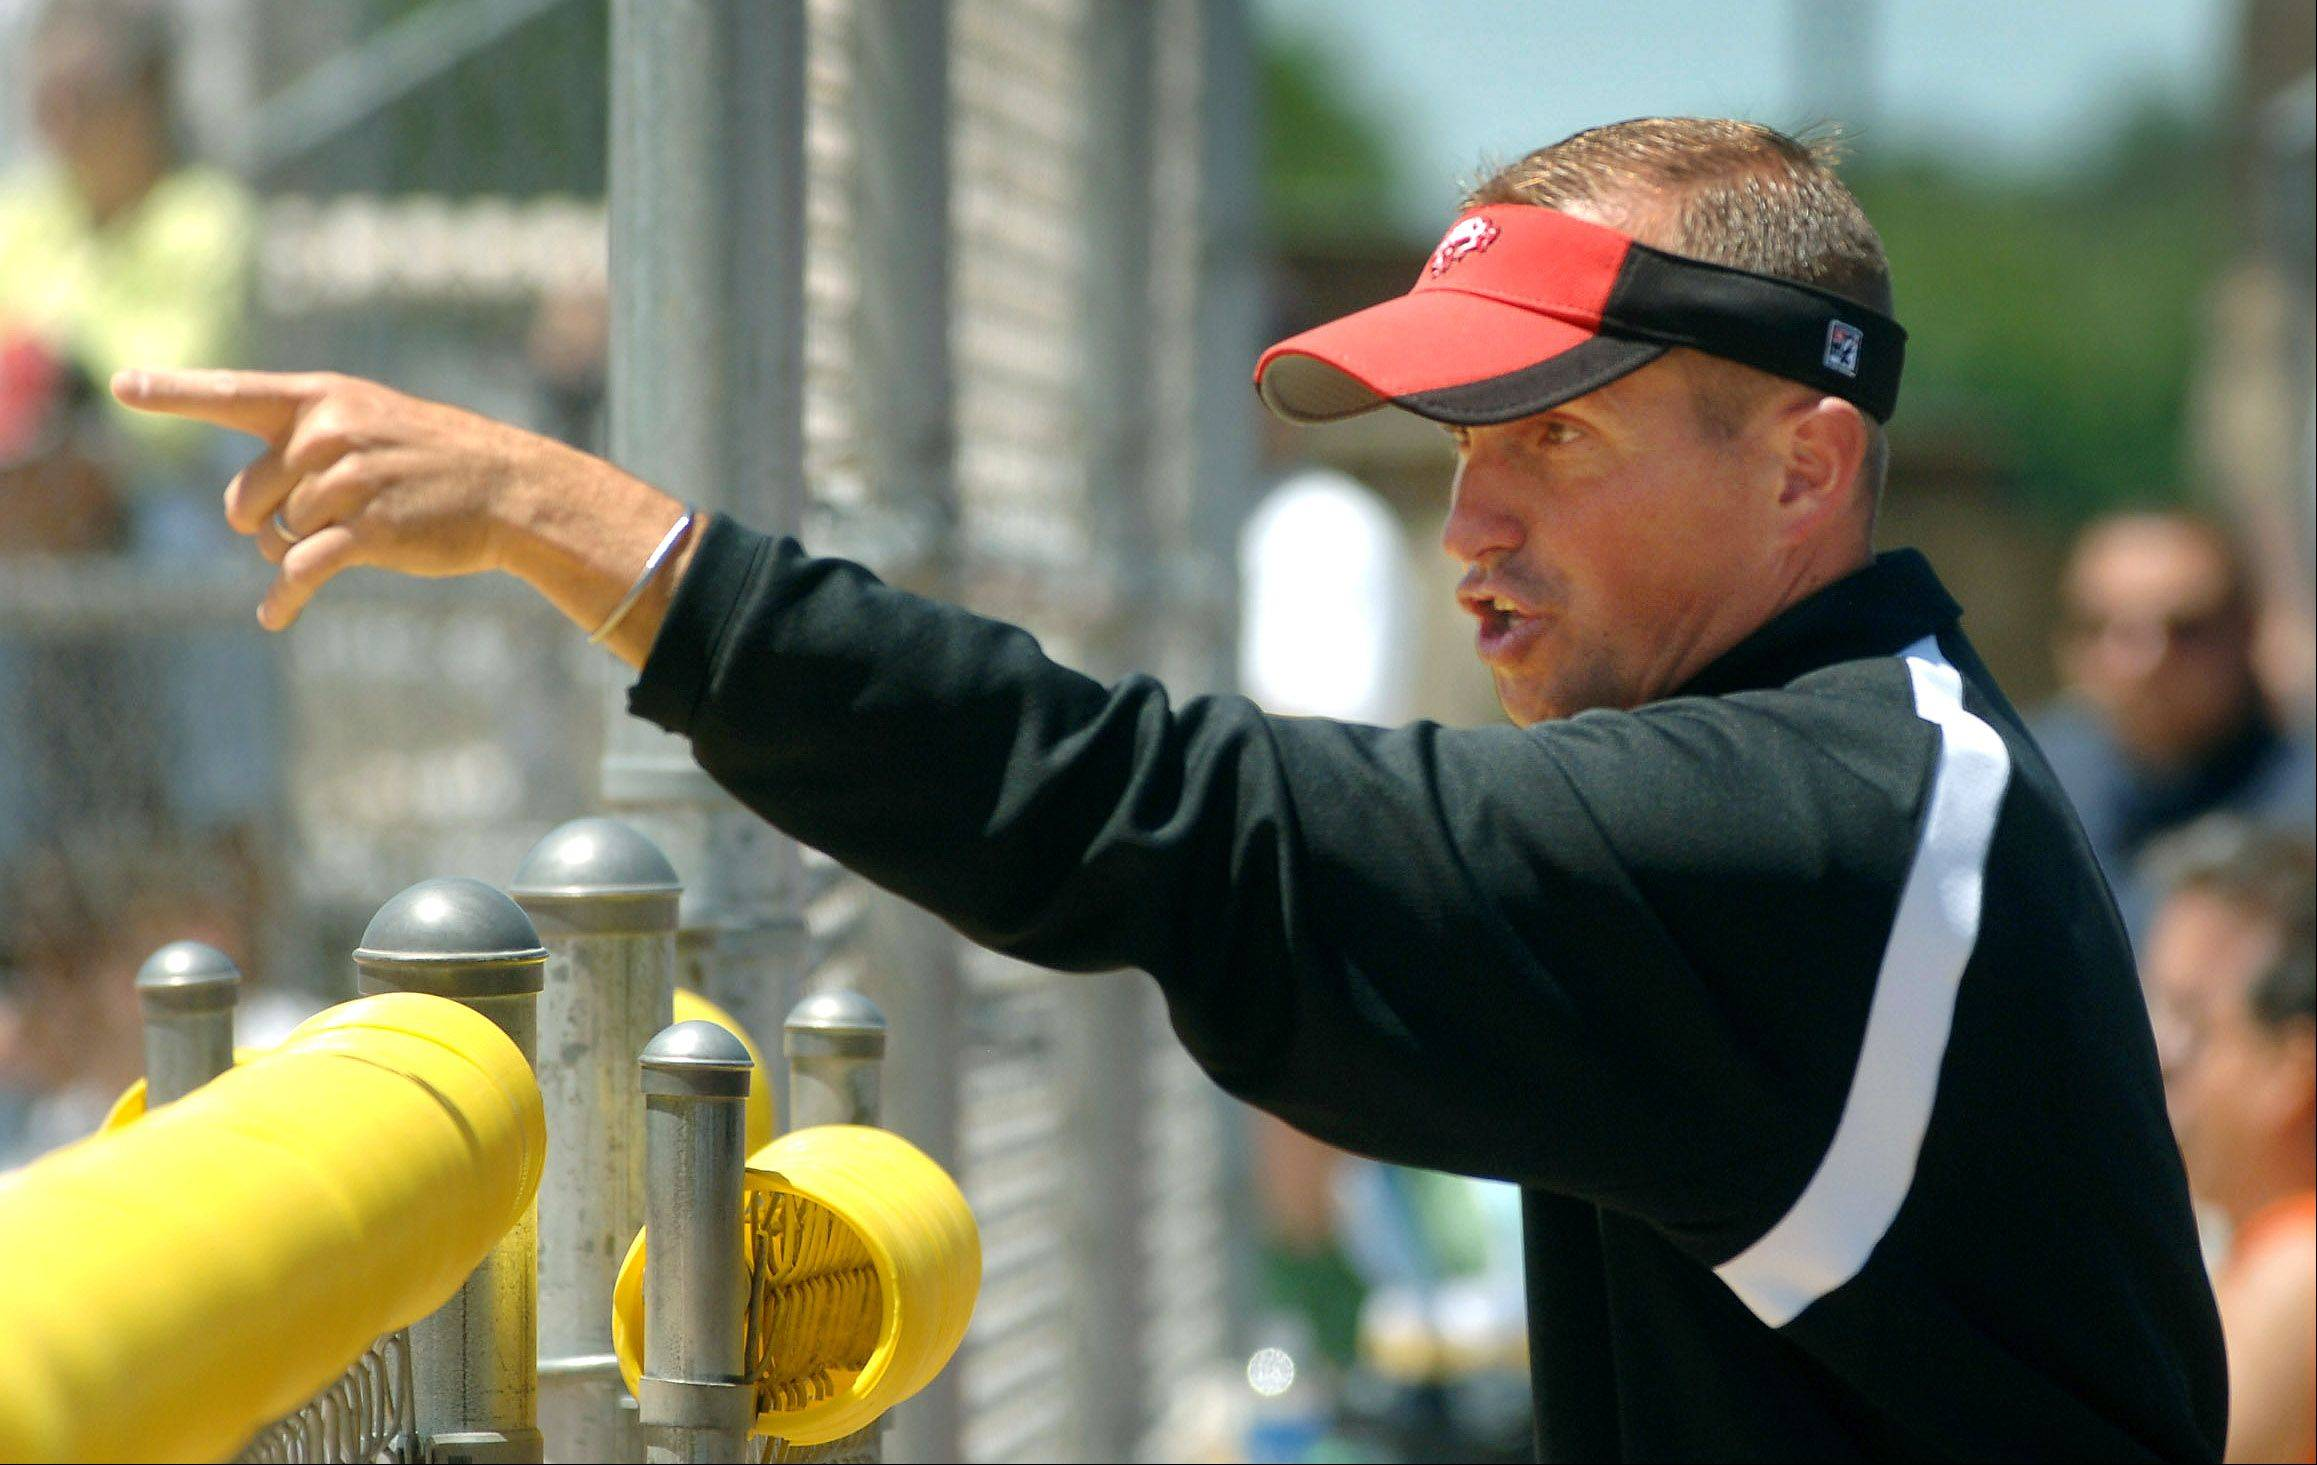 Barrington softball coach Perry Peterson, here directing the action in a state quarterfinal game in 2007, has become the youngest member to gain inclusion in the Illinois Coaches Assocation Hall of Fame.